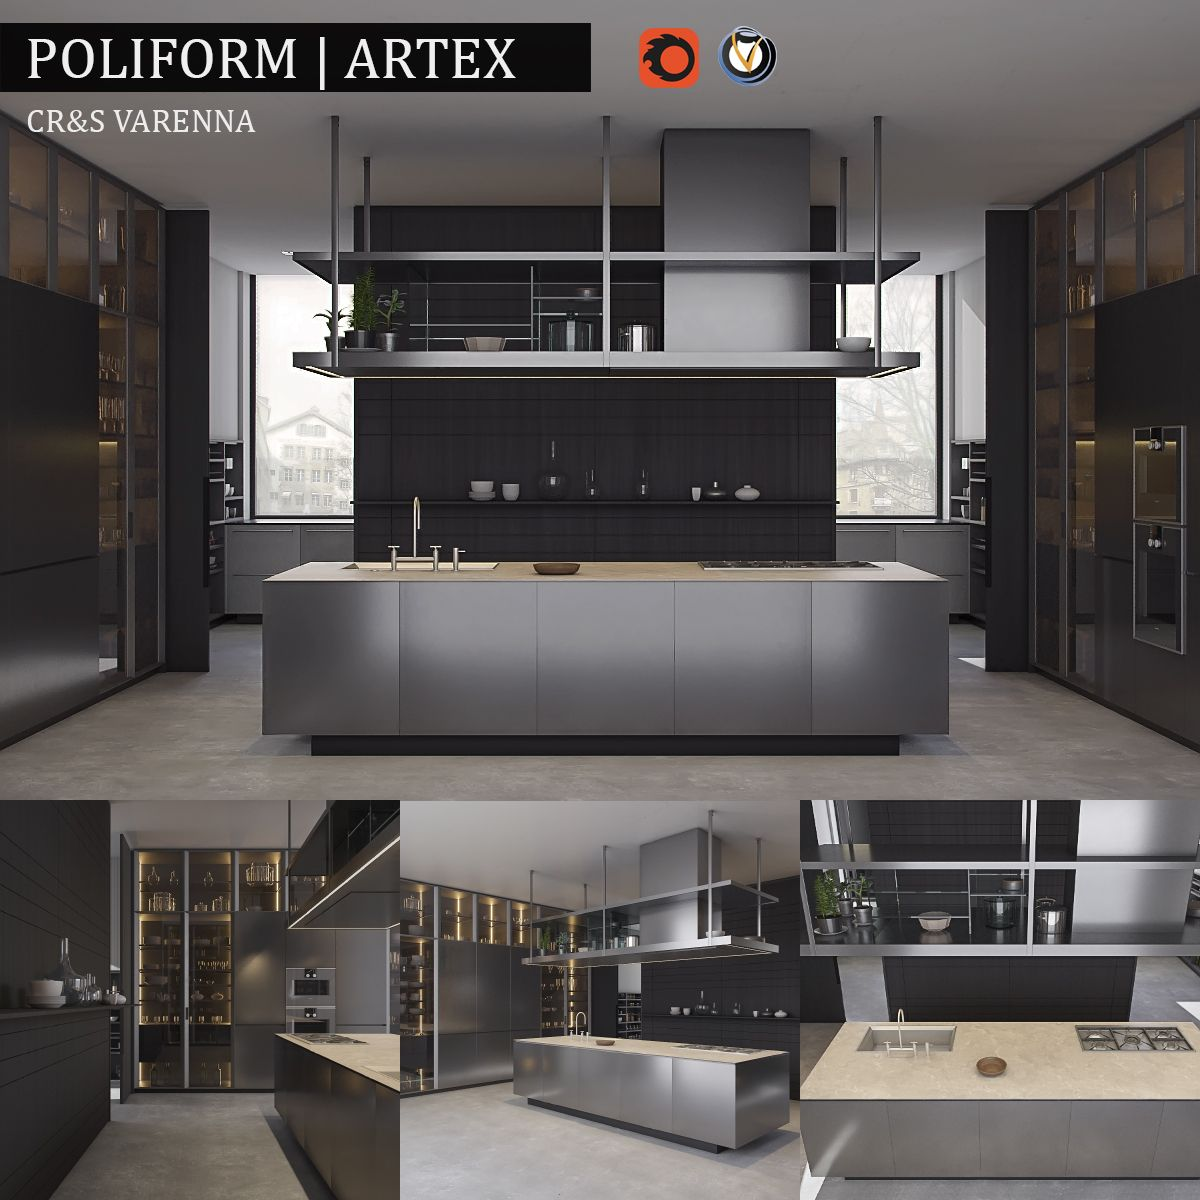 3d Animation, 3ds Max